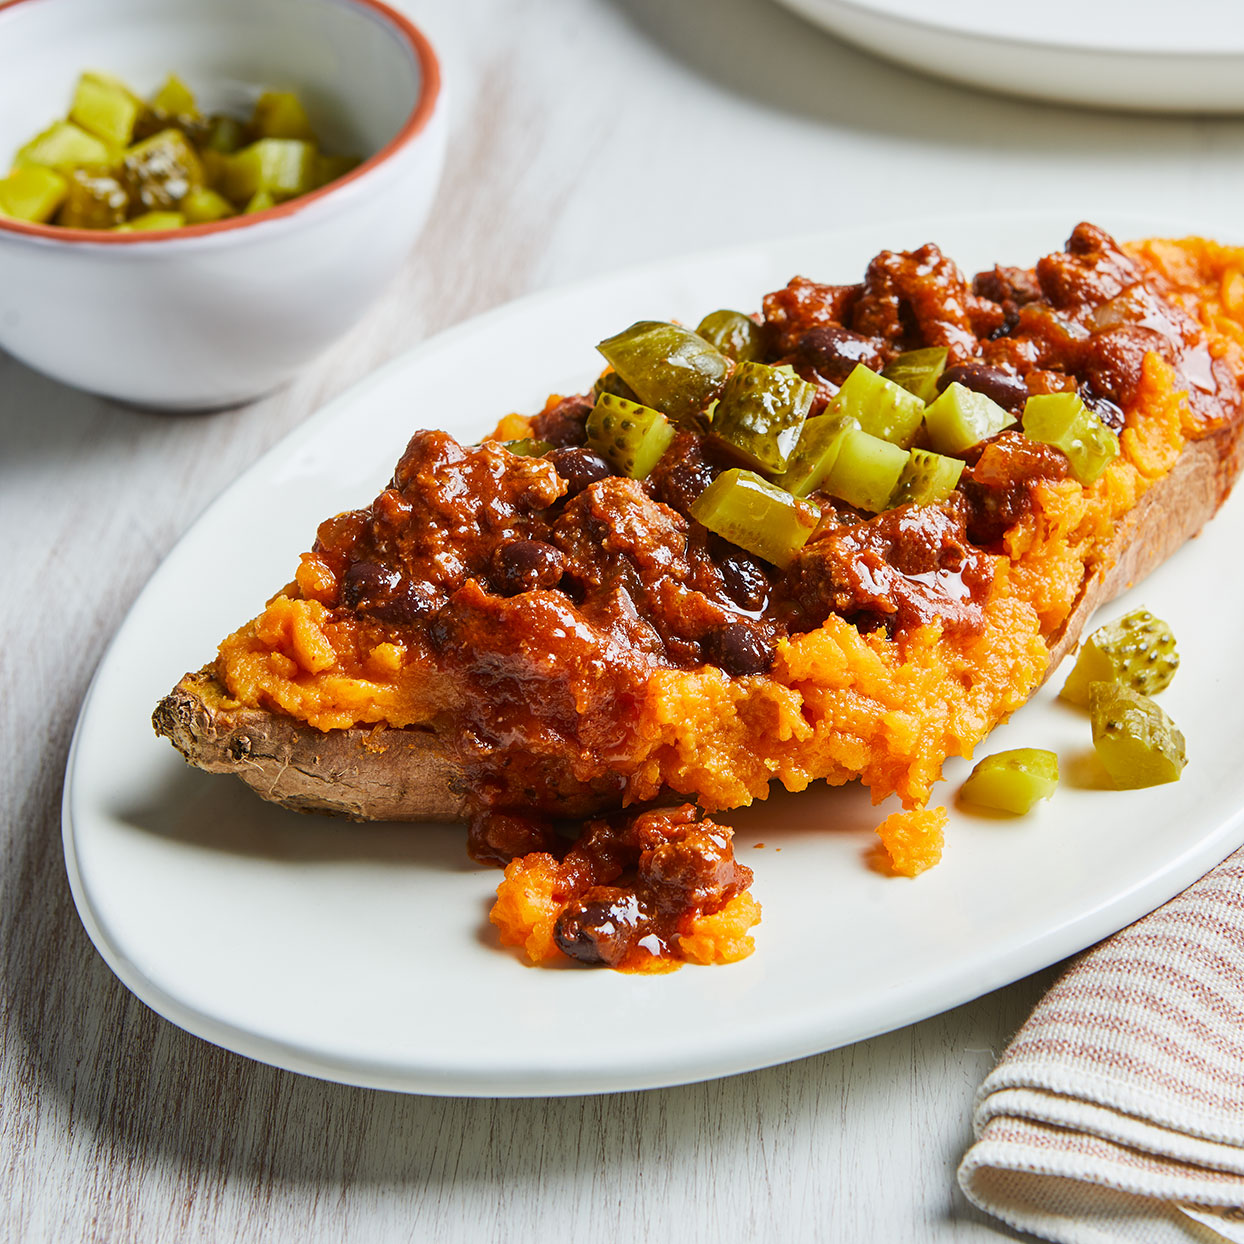 Take sloppy Joes to a new level with tender sweet potatoes standing in for the bun. Sweet potatoes pair perfectly with the tangy, flavorful filling of ground beef, black beans and spices. Chopped dill pickle sprinkled on top adds crunch to this quick weeknight dinner the whole family will love.